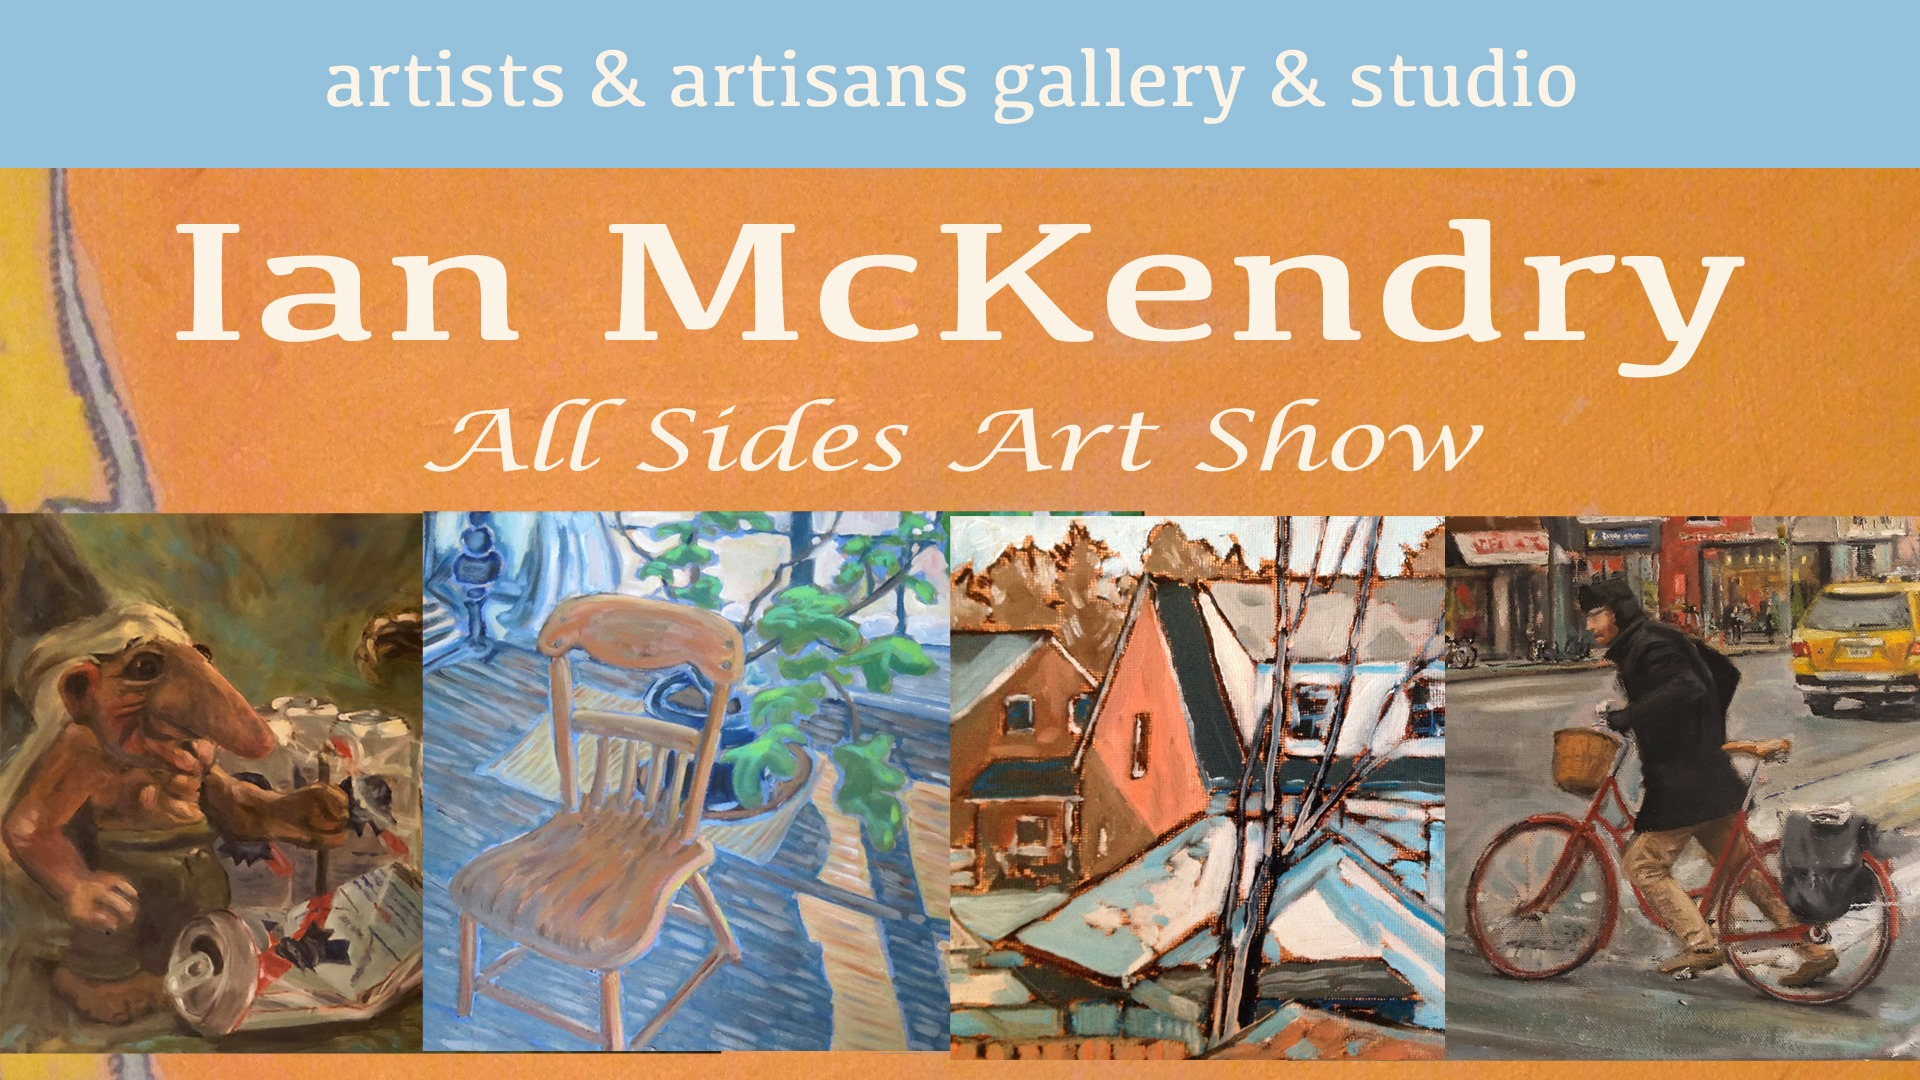 artists & artisans gallery opening reception